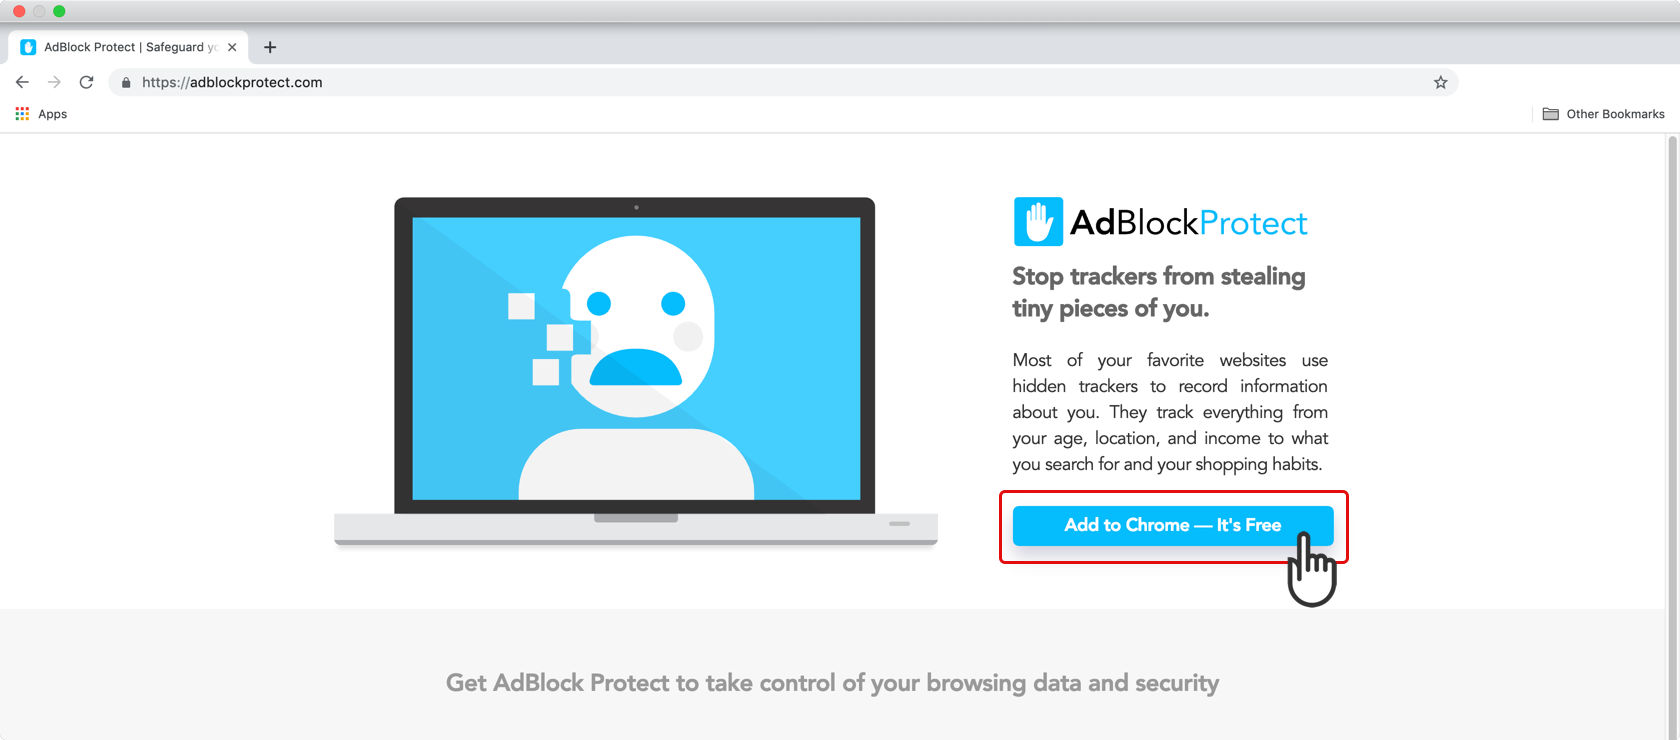 Installing AdBlock Protect, Step 1